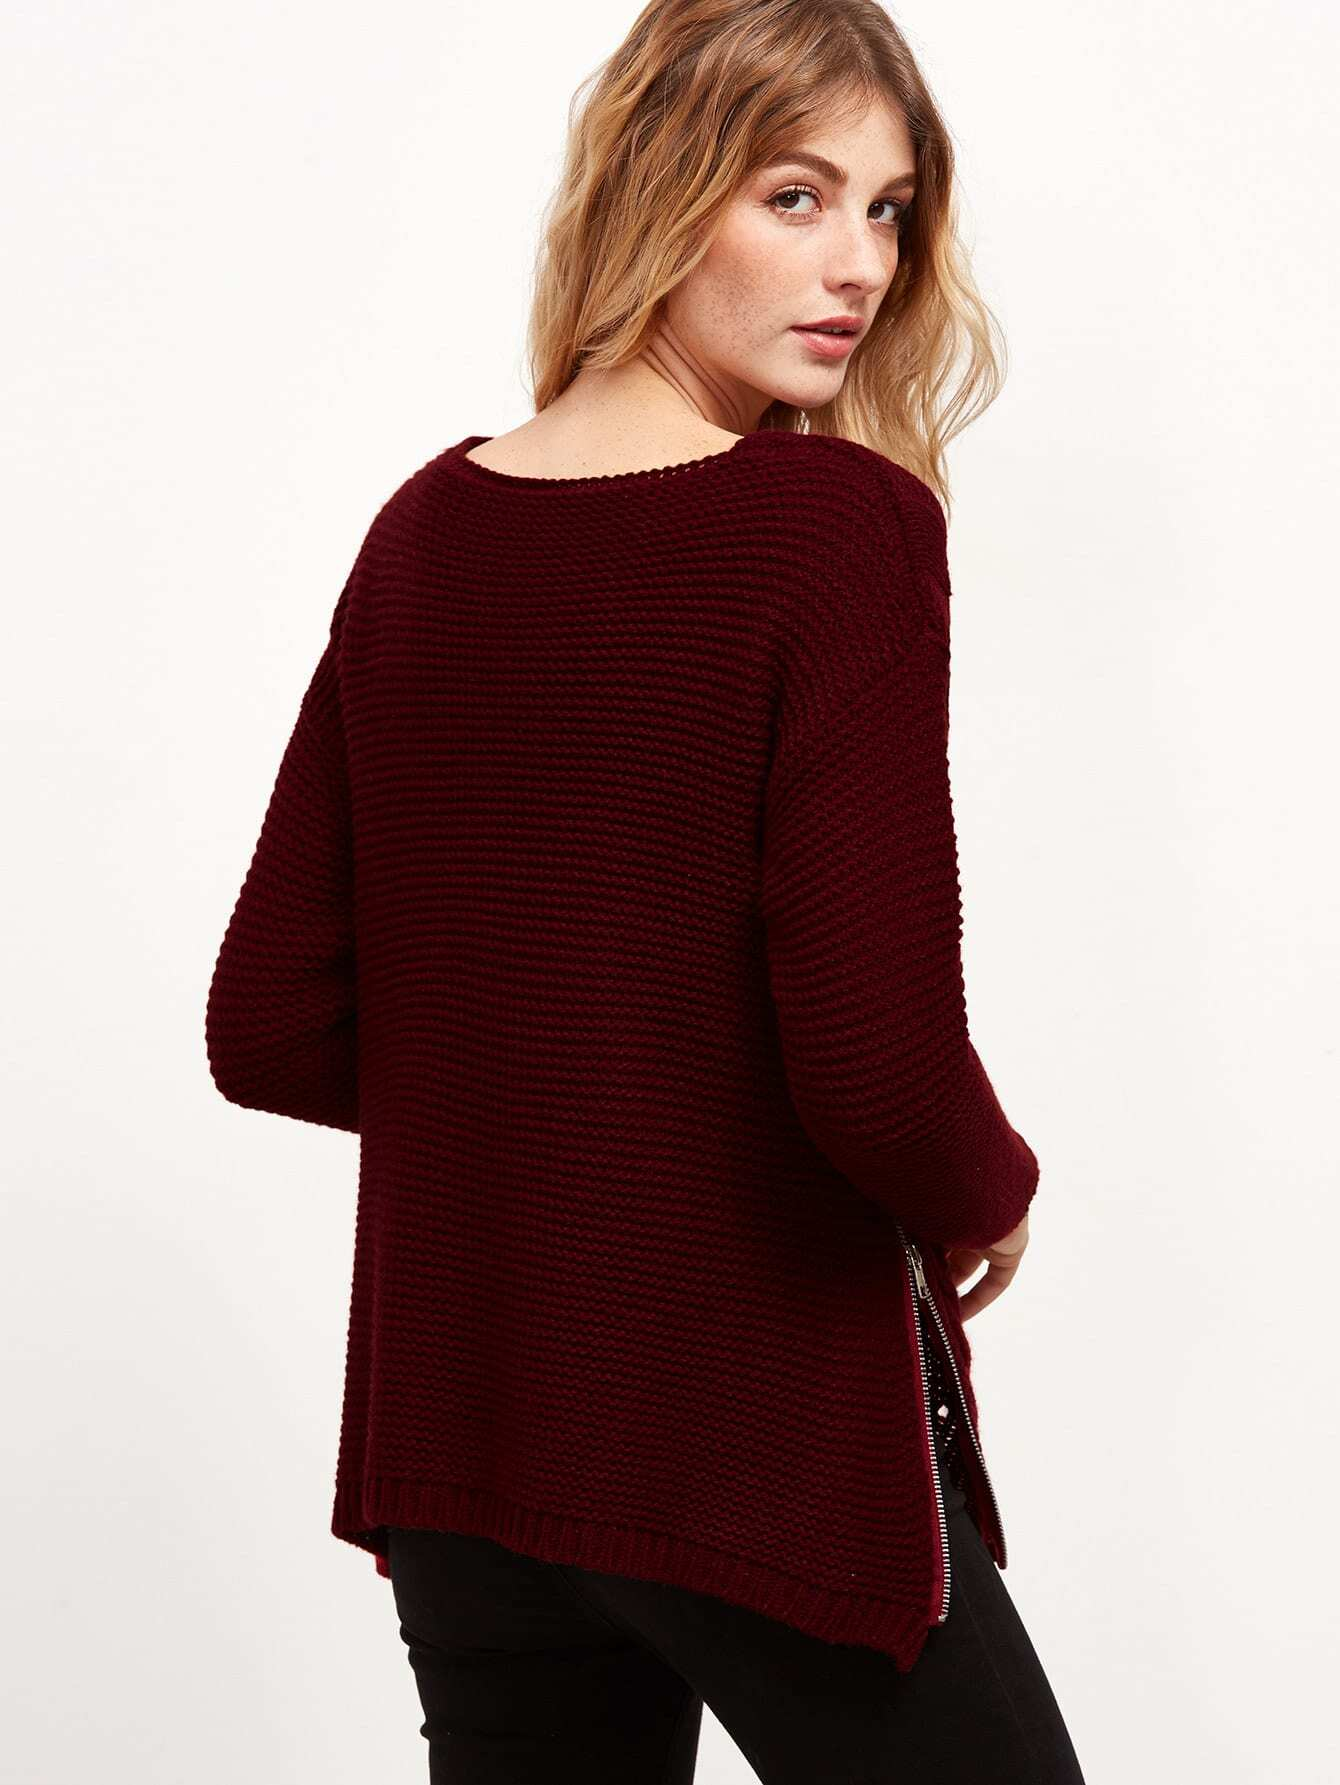 Cable-knit sweater in soft cotton-blend fabric with ribbing at neckline, cuffs, and hem.